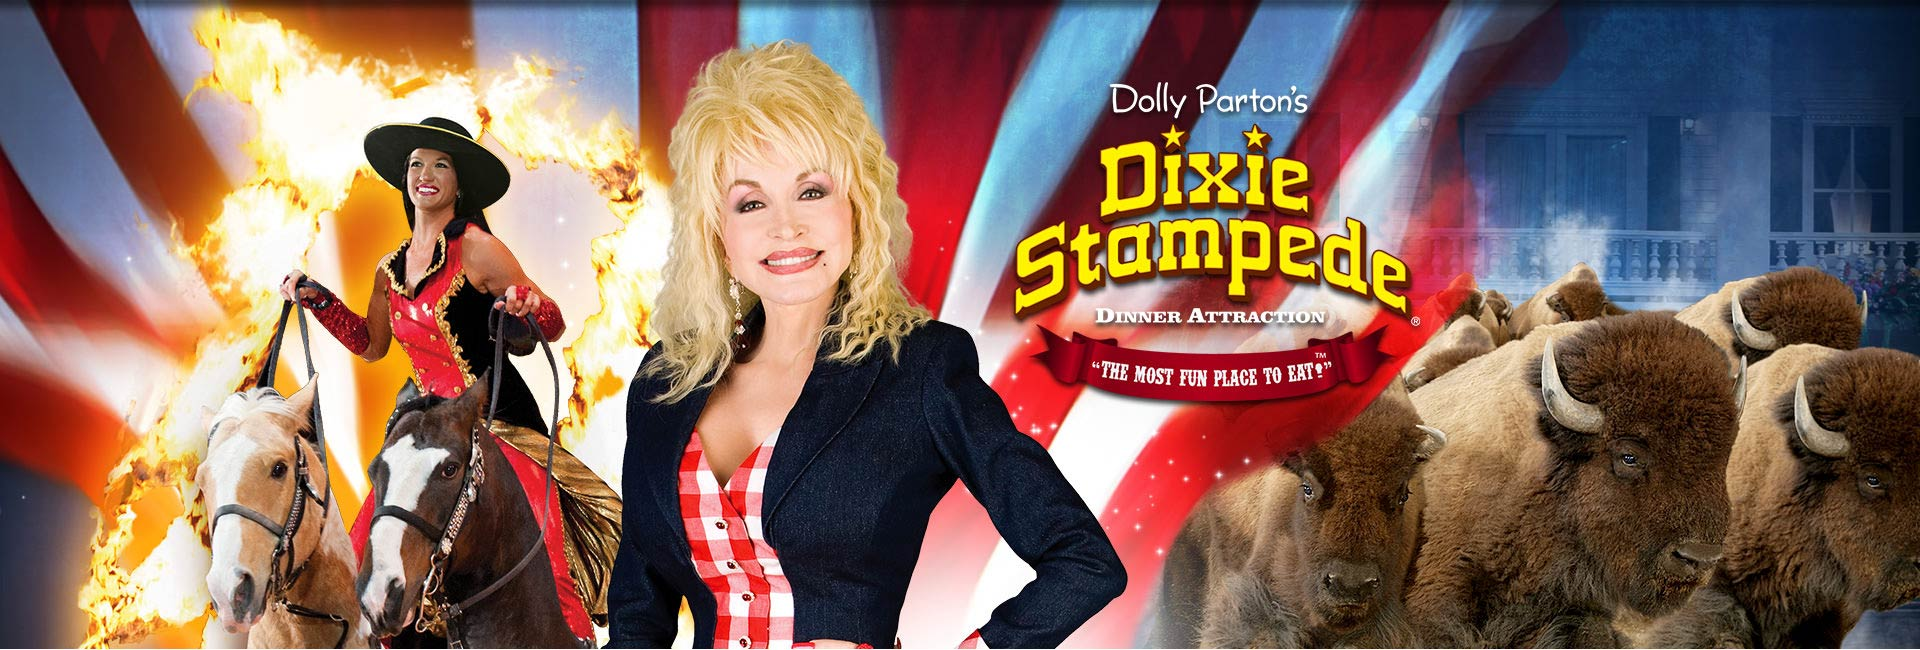 Dolly Parton S Dixie Stampede Dinner Attraction